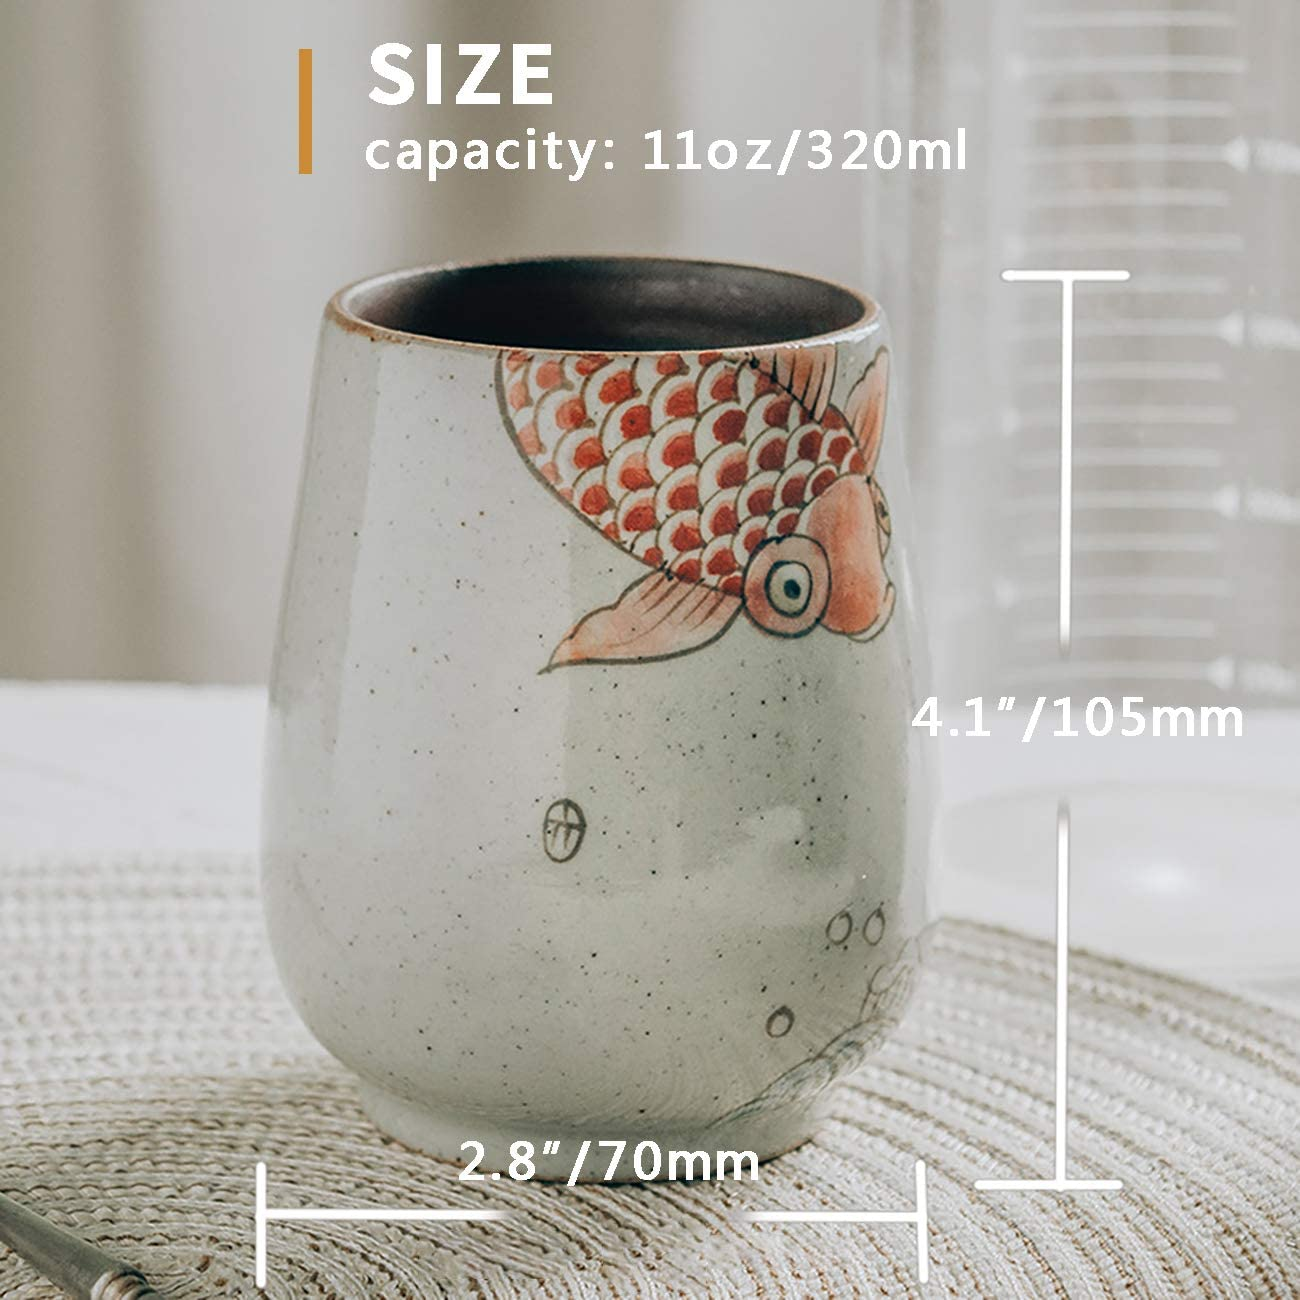 Reusable Slip-Proof Gripping Easy Cleaning Goldfish Pattern A Include Stainless Steel Straw for Home and Travel Use Ceramic Yerba Mate Tumbler Gourd and Bombilla Set